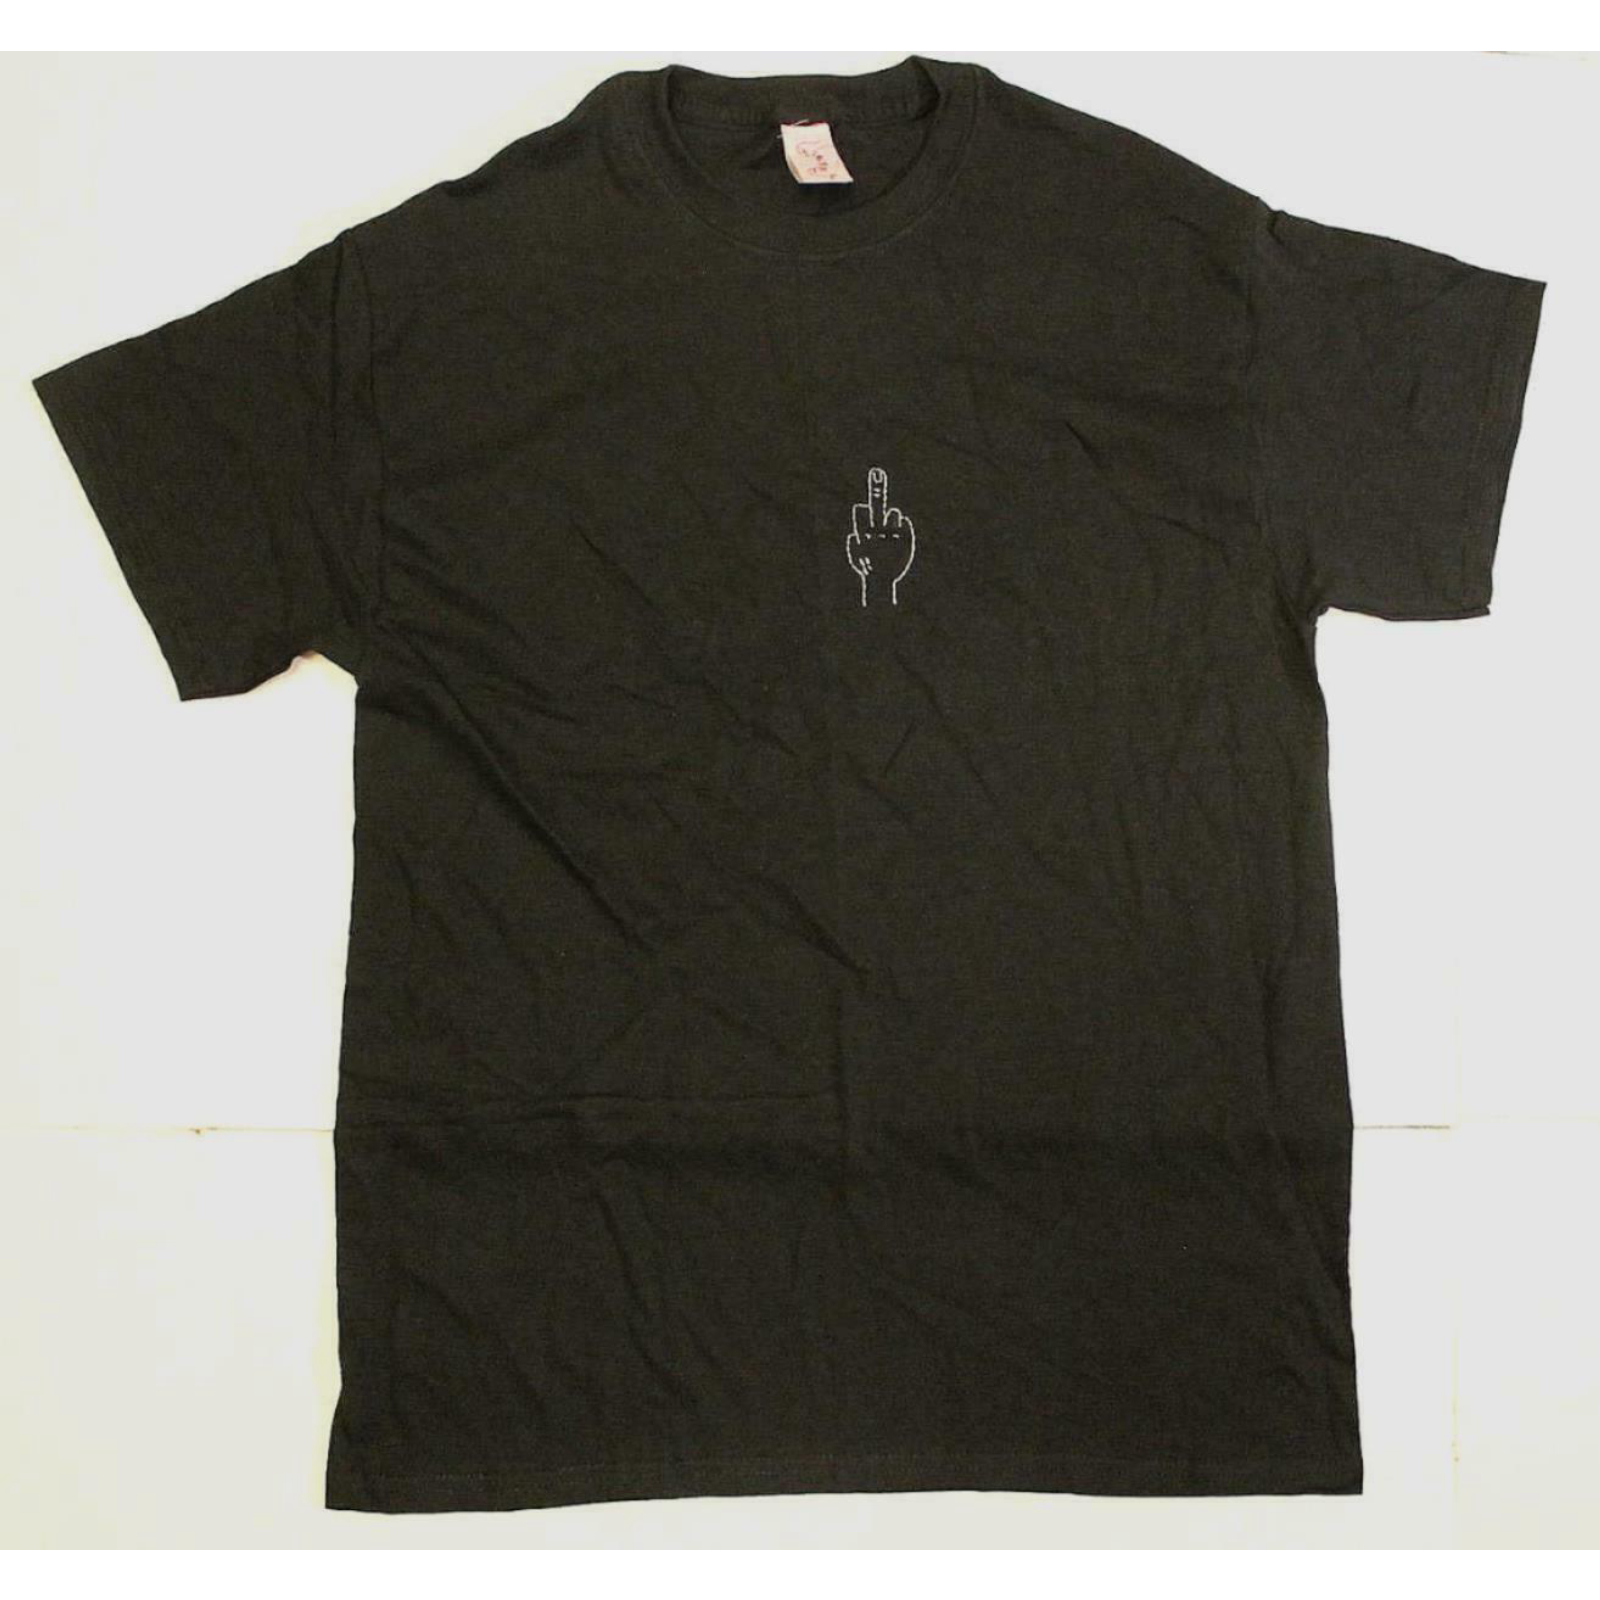 Product Image 1 - The Katy Days Men's Middle